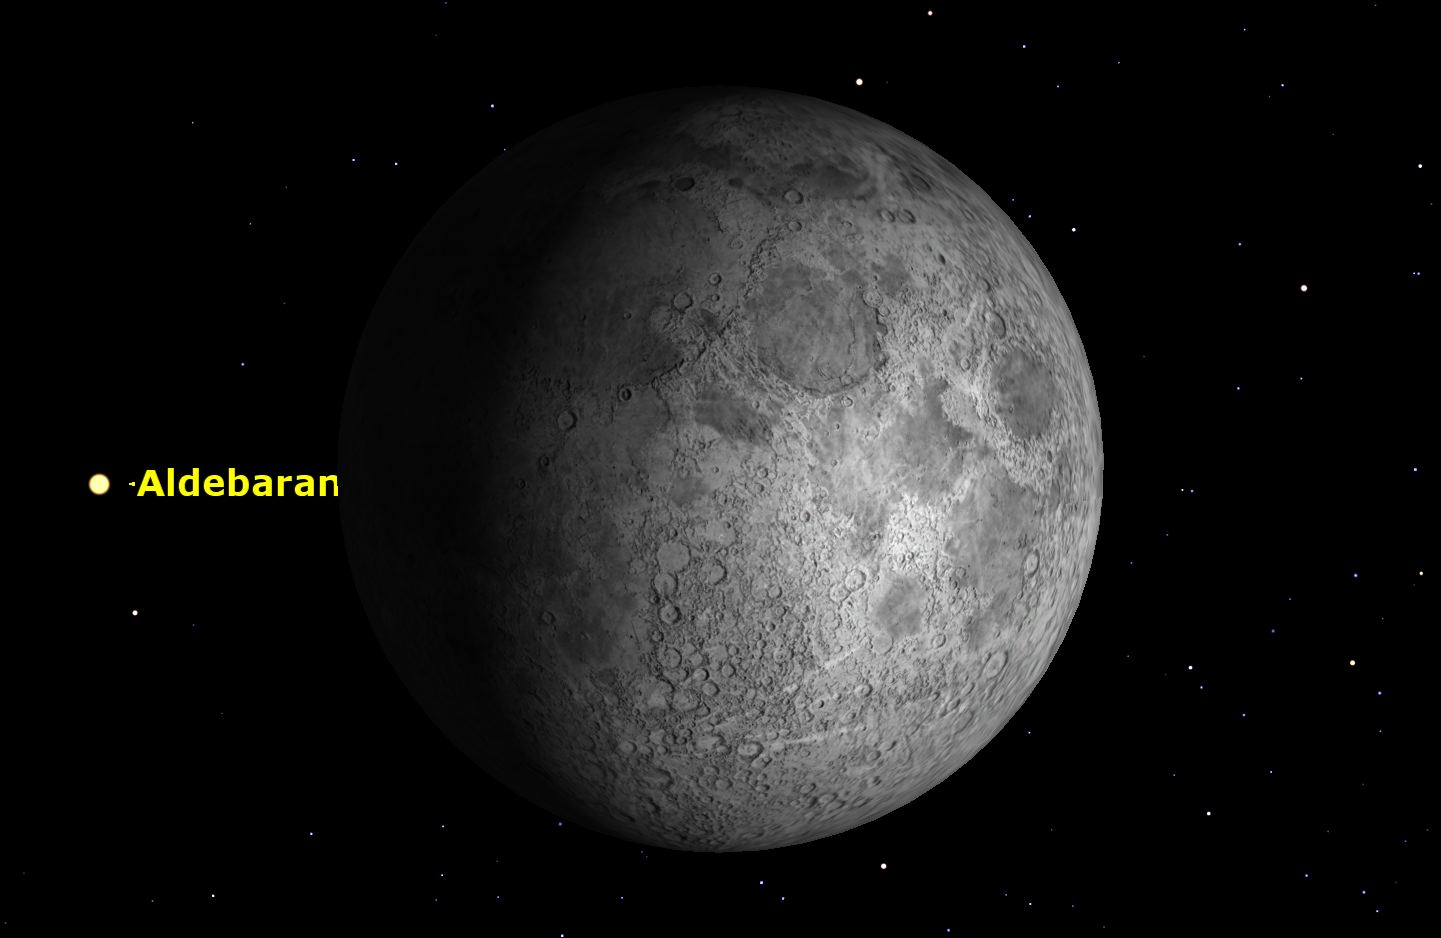 Aldebaran and the Moon, January 2016